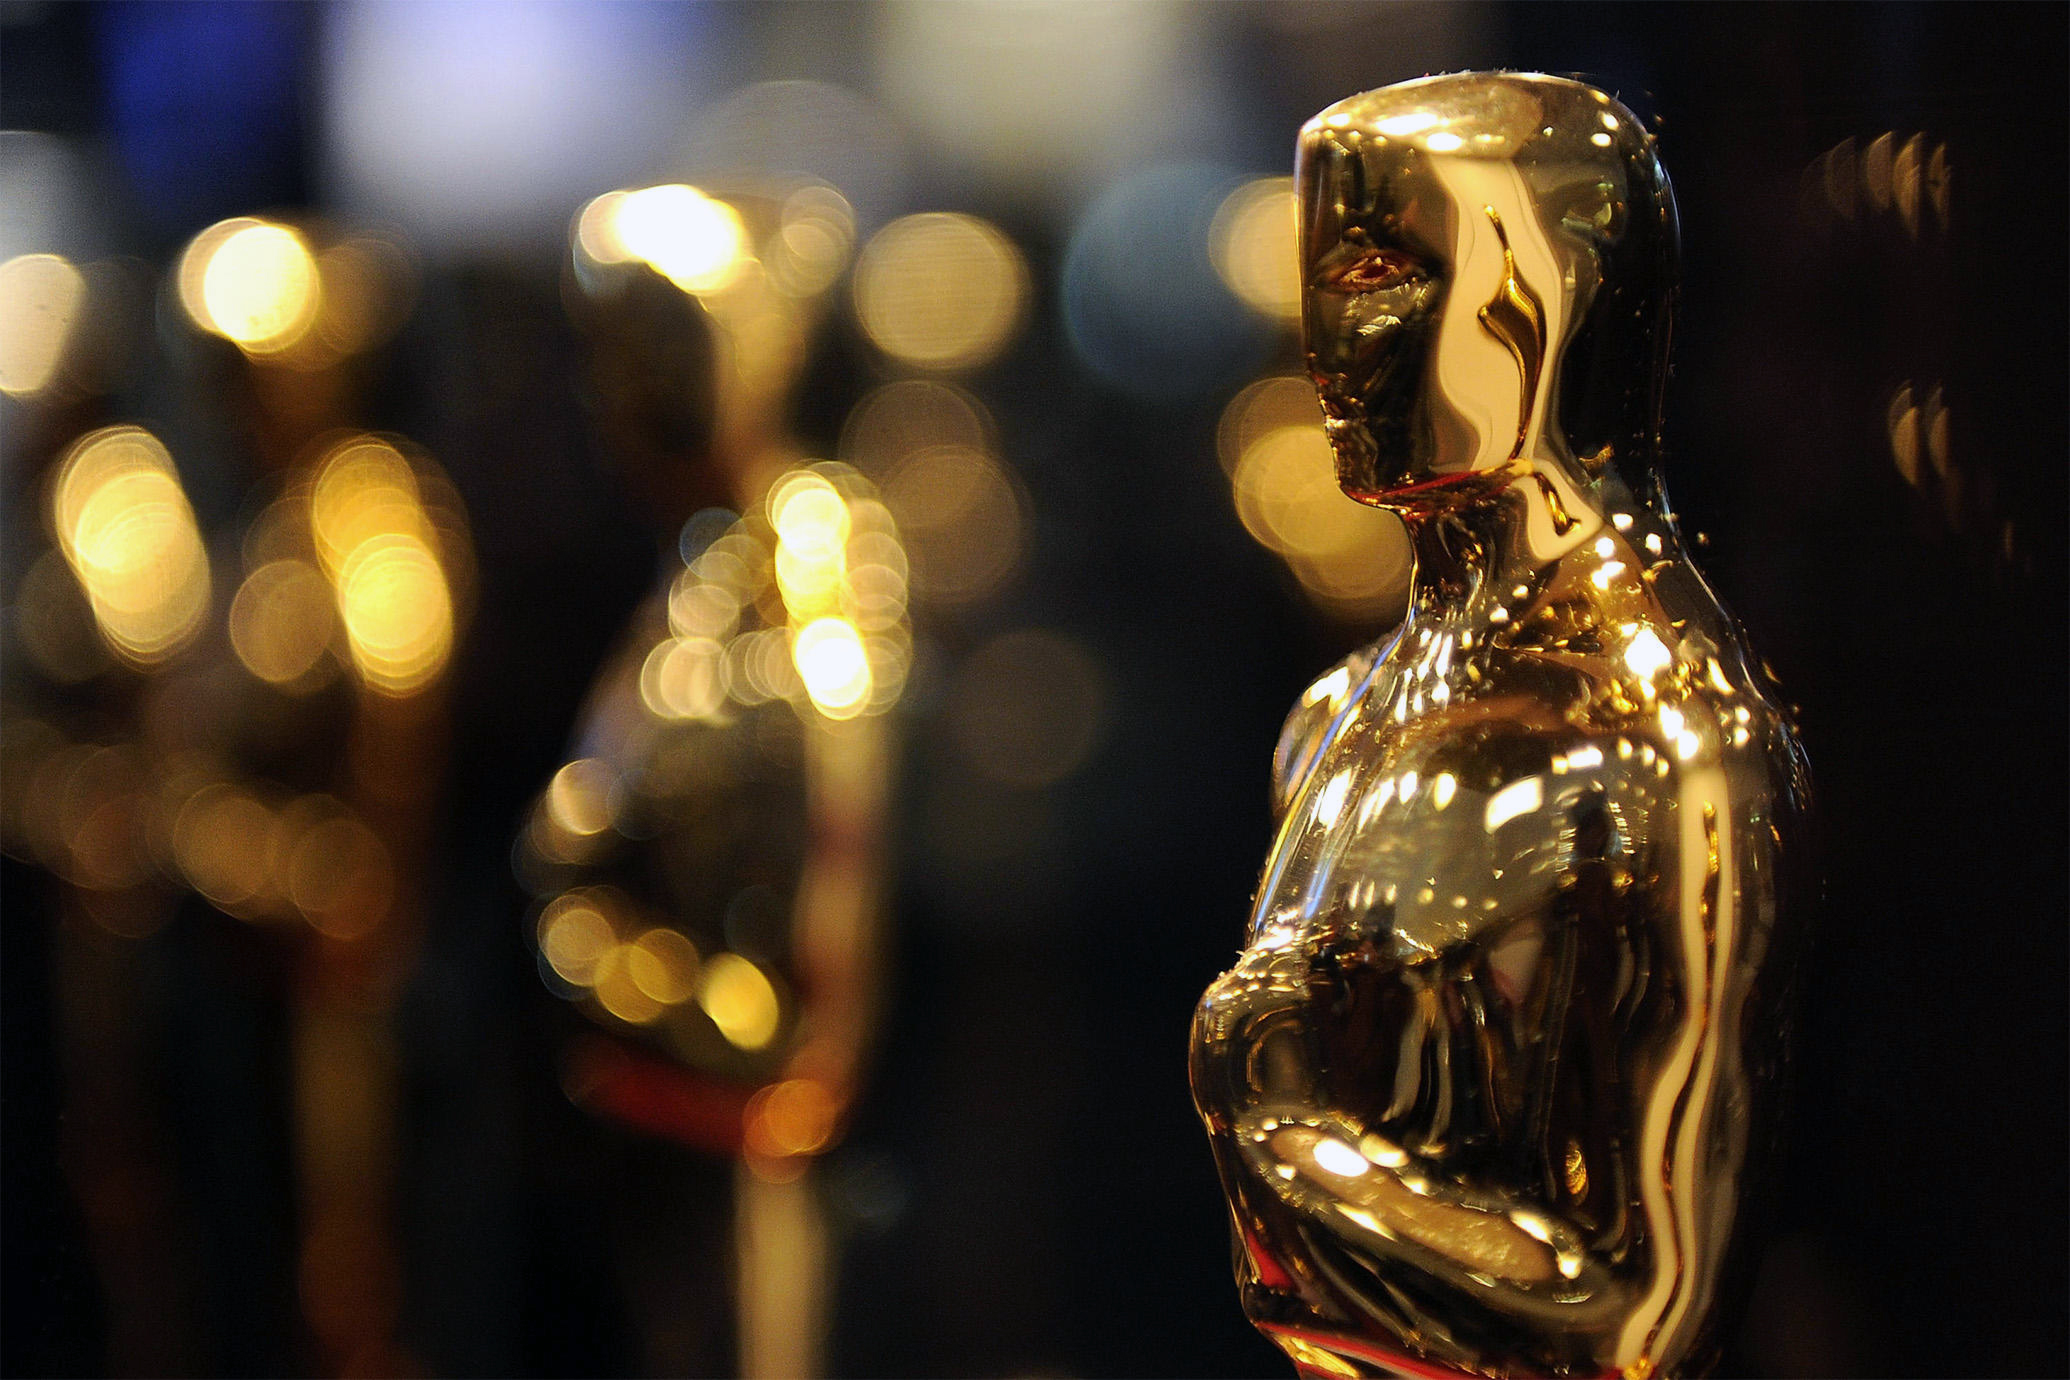 The Oscar for Best Digital Presence